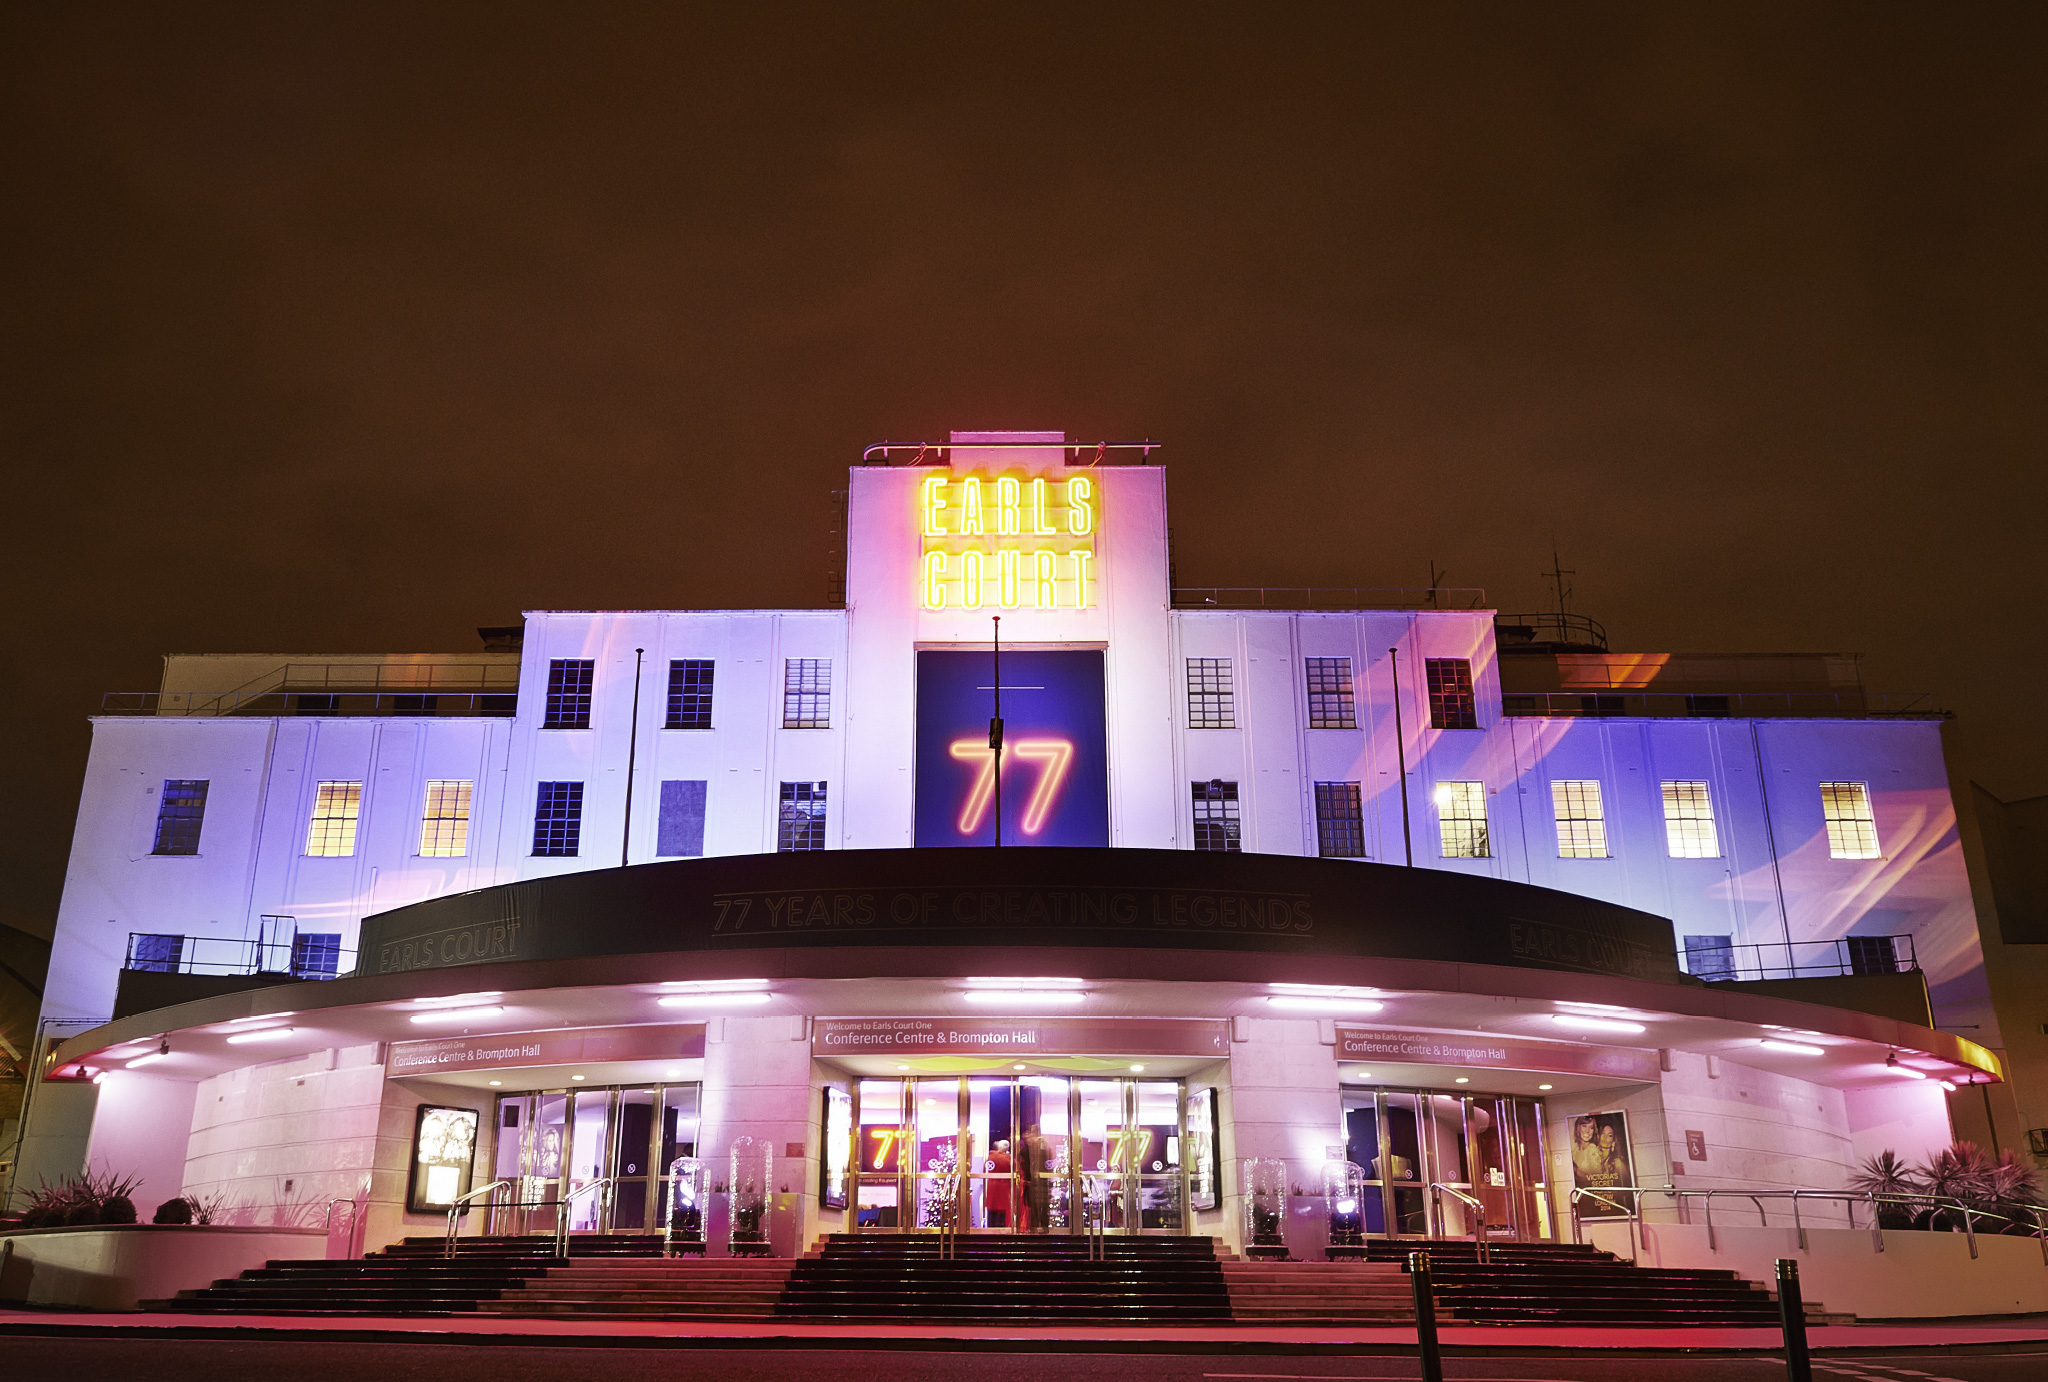 night photograph of the Earls Court entrance